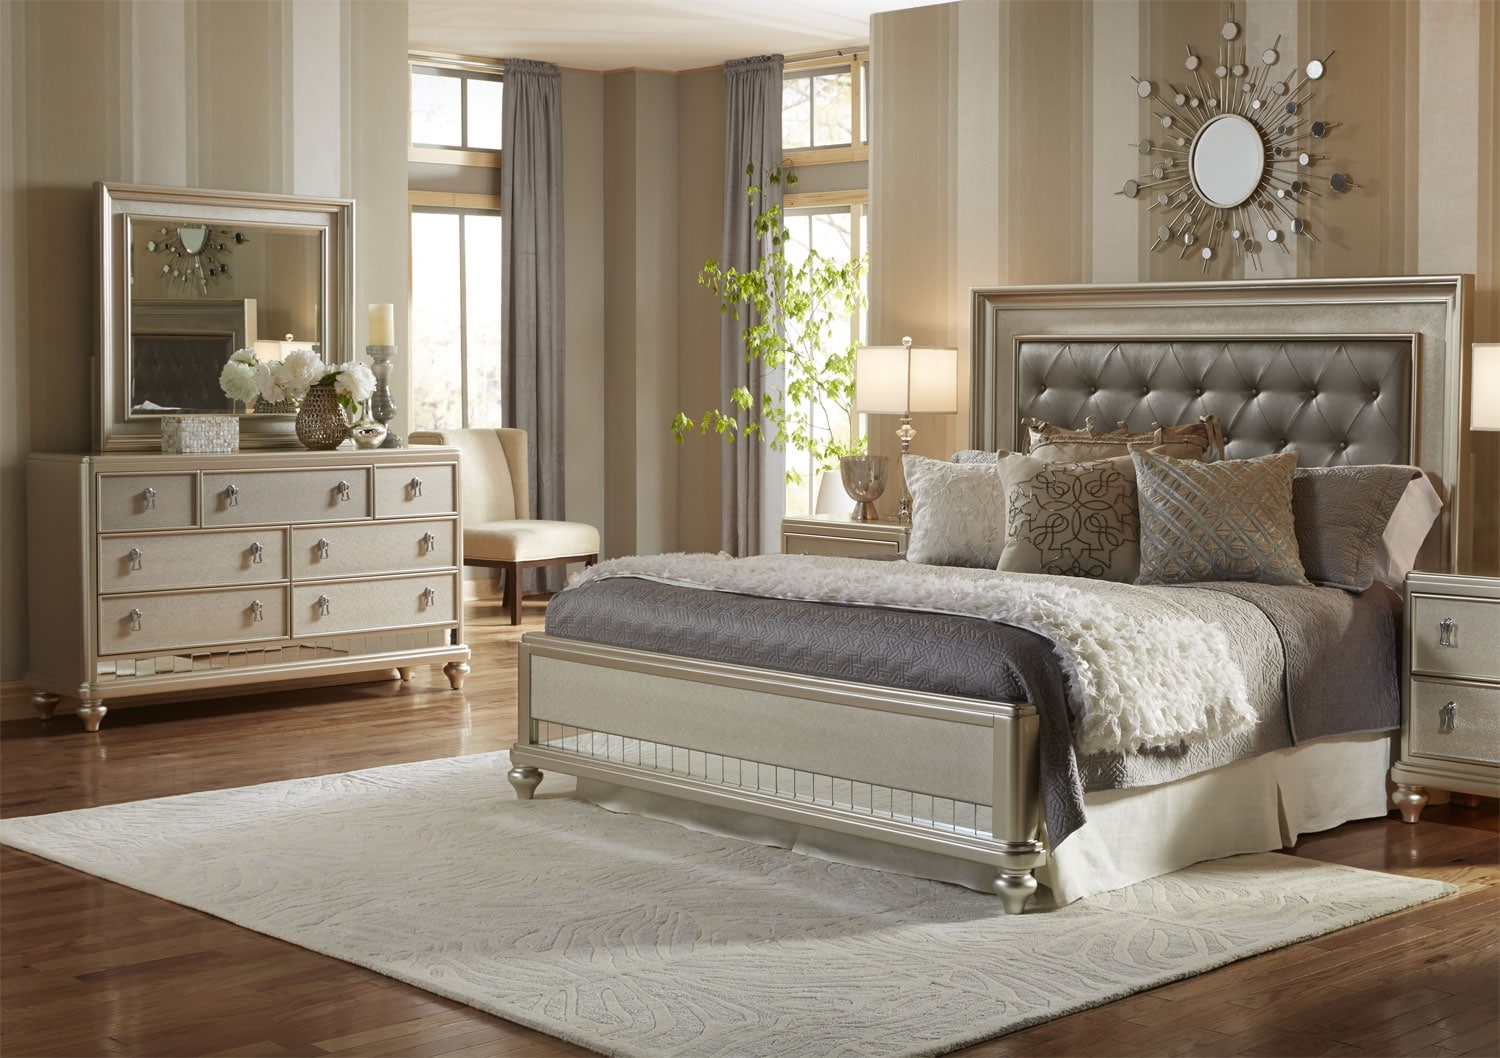 Bedroom Furniture - Diva 5-Piece King Bedroom Package